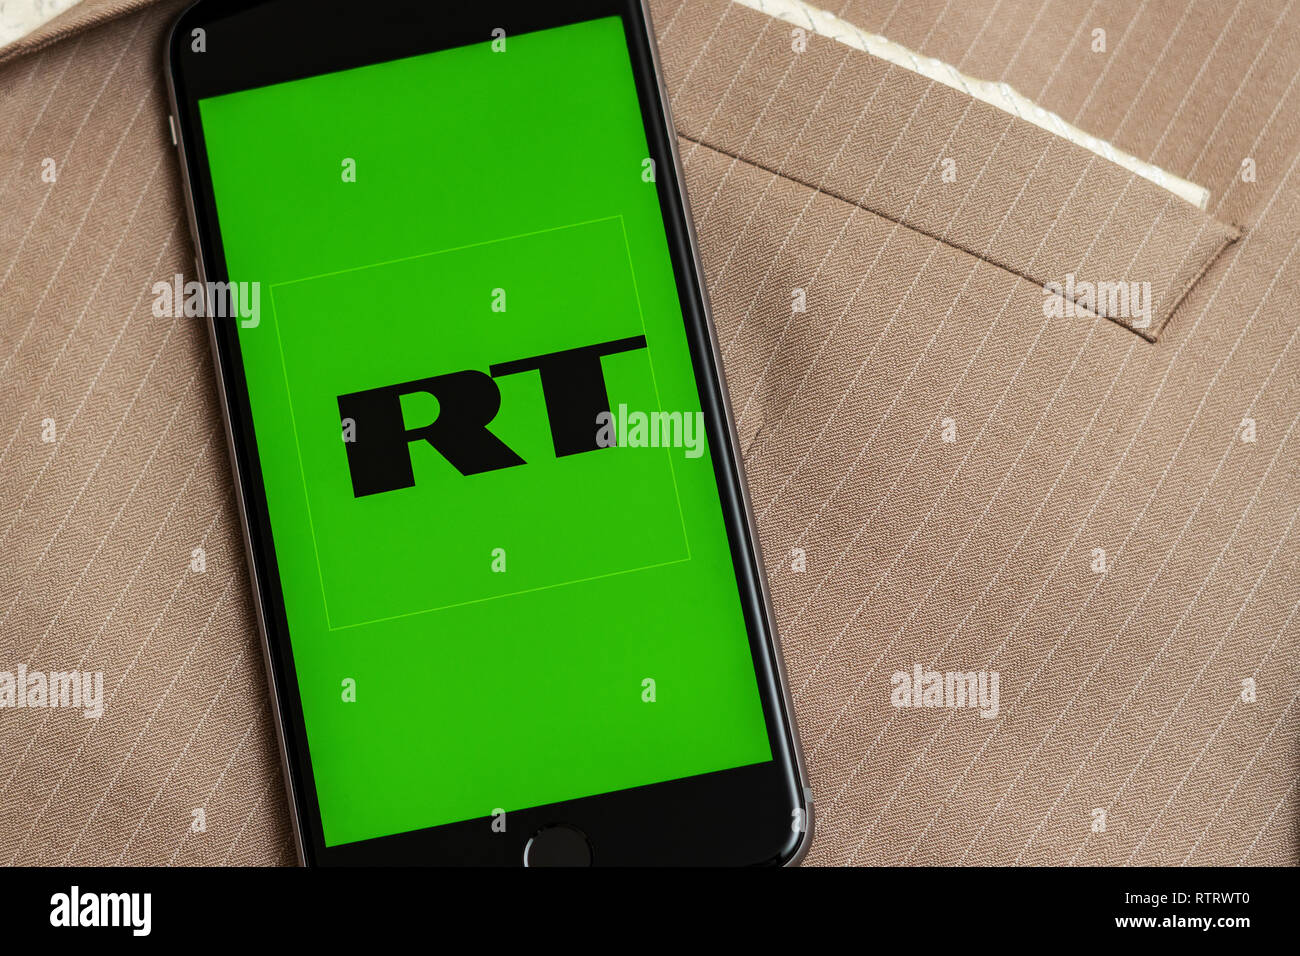 Russia Today Stock Photos & Russia Today Stock Images - Alamy